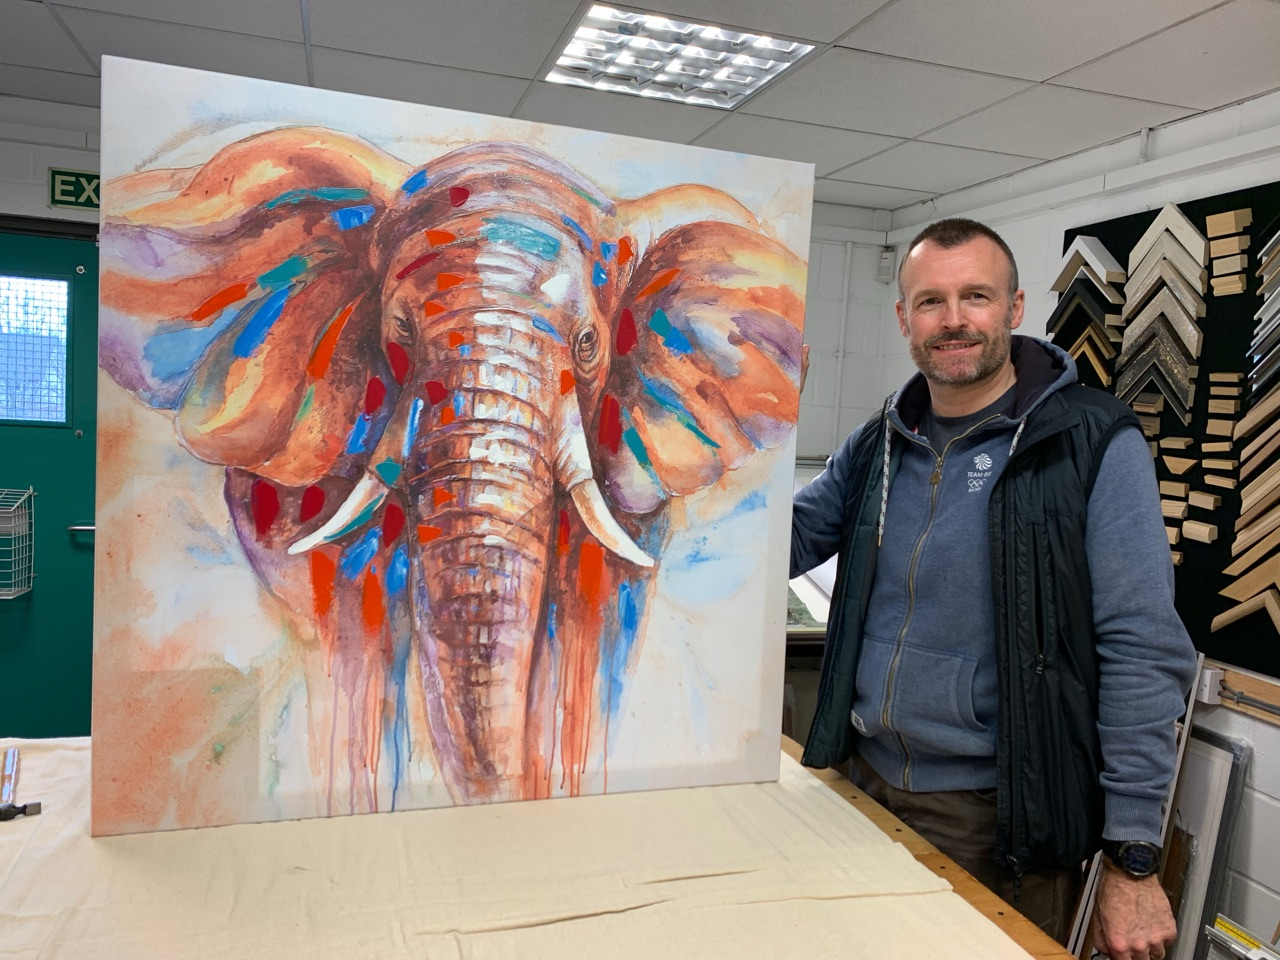 Recent framing job, a canvas from Africa bought home from holiday that client wanted stretched and ready to hang in their home.